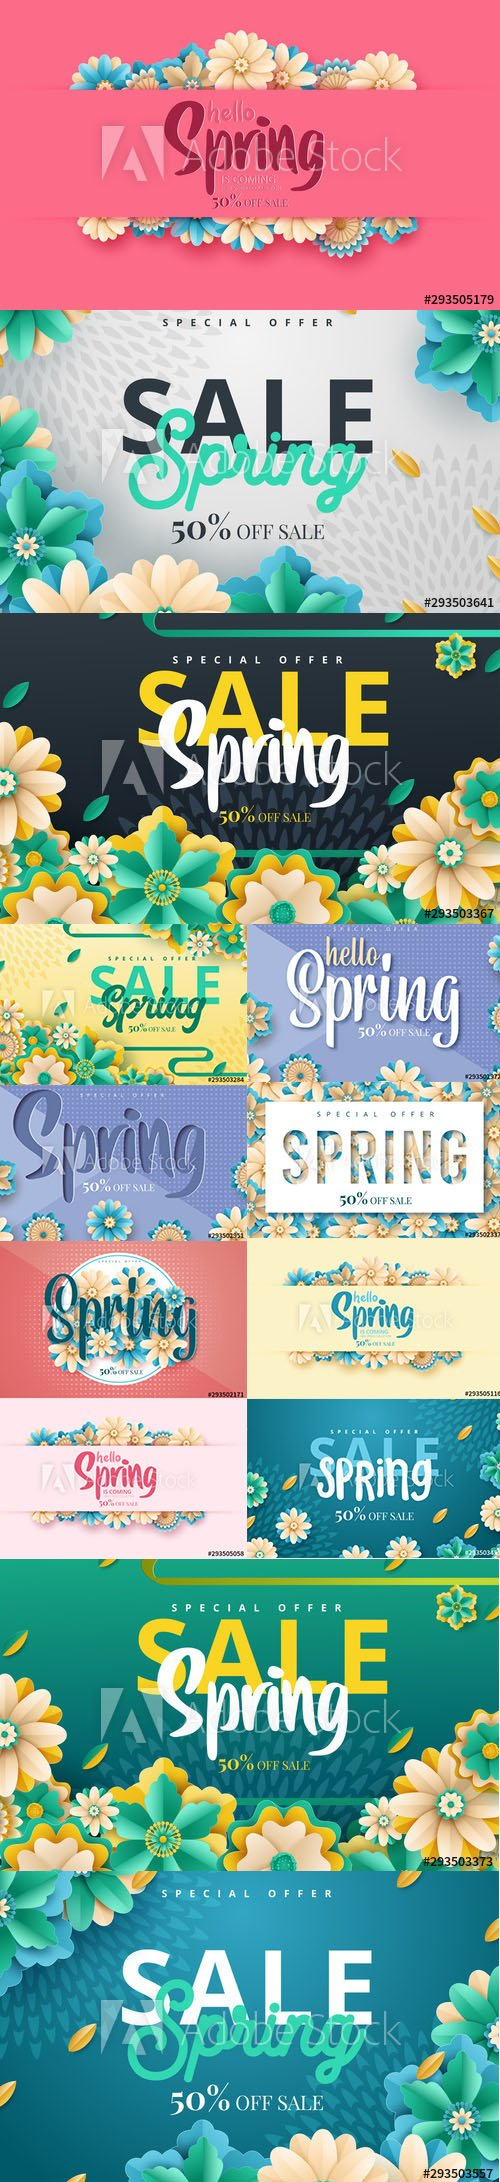 Spring Sale Backgrounds with Flowers vol2